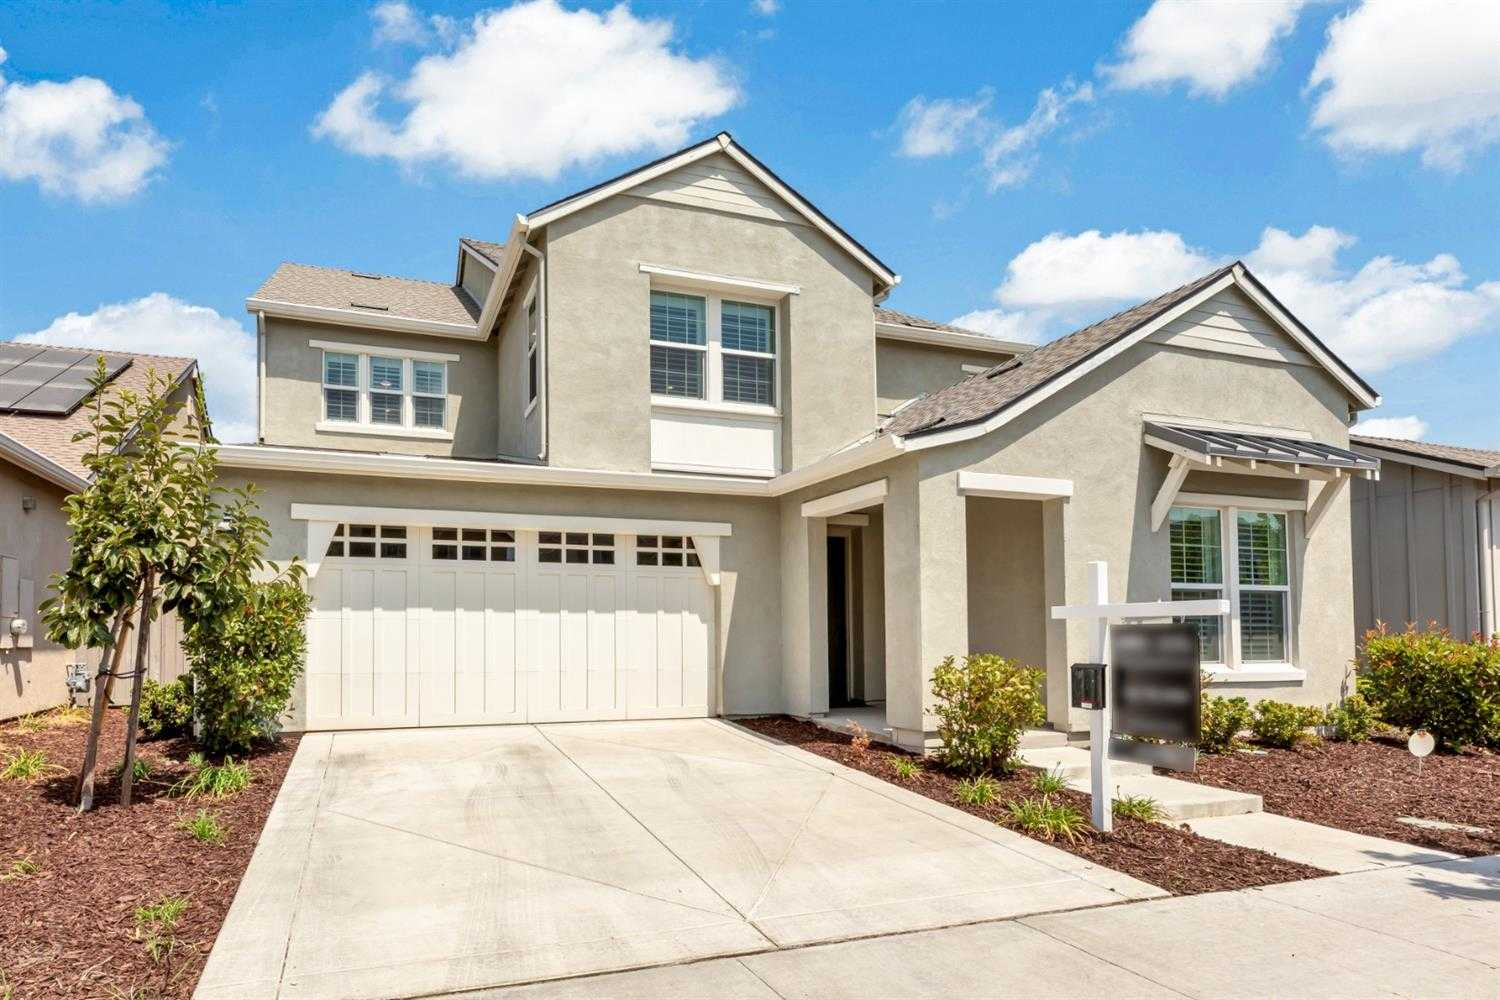 $1,449,000 - 4Br/5Ba -  for Sale in The Cannery, Davis